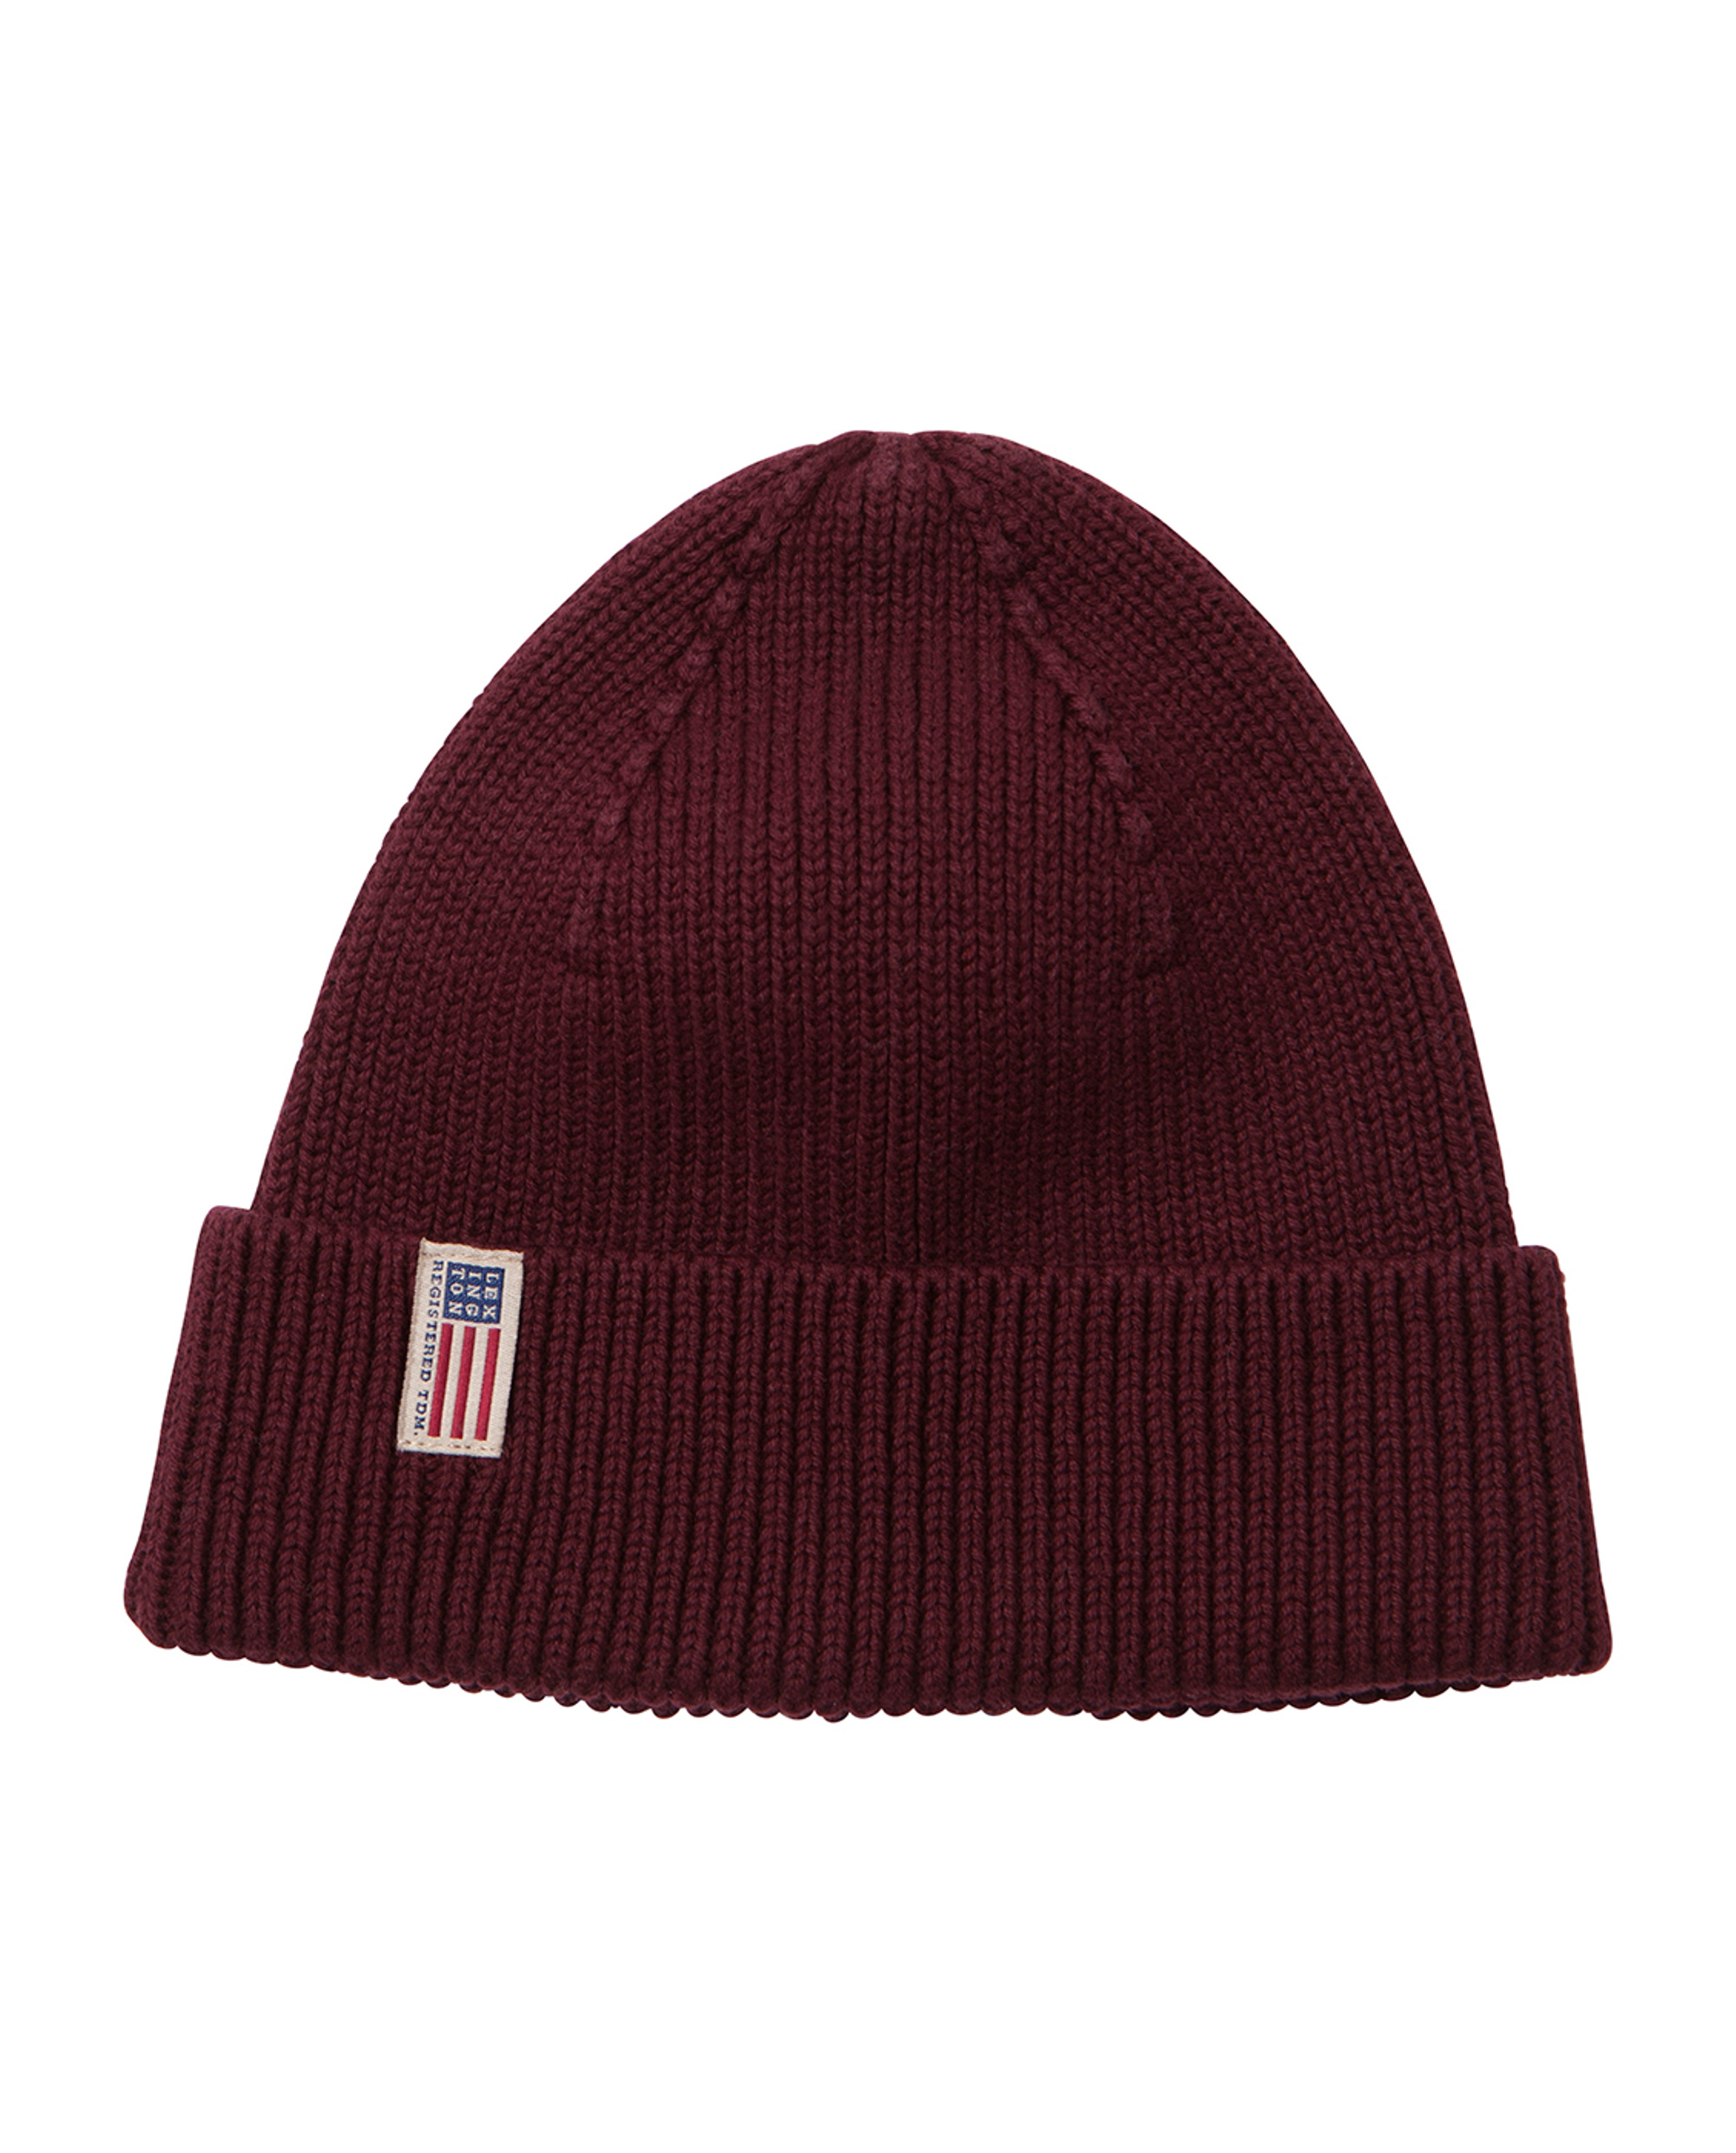 Stockton Beanie, Burgundy Wine